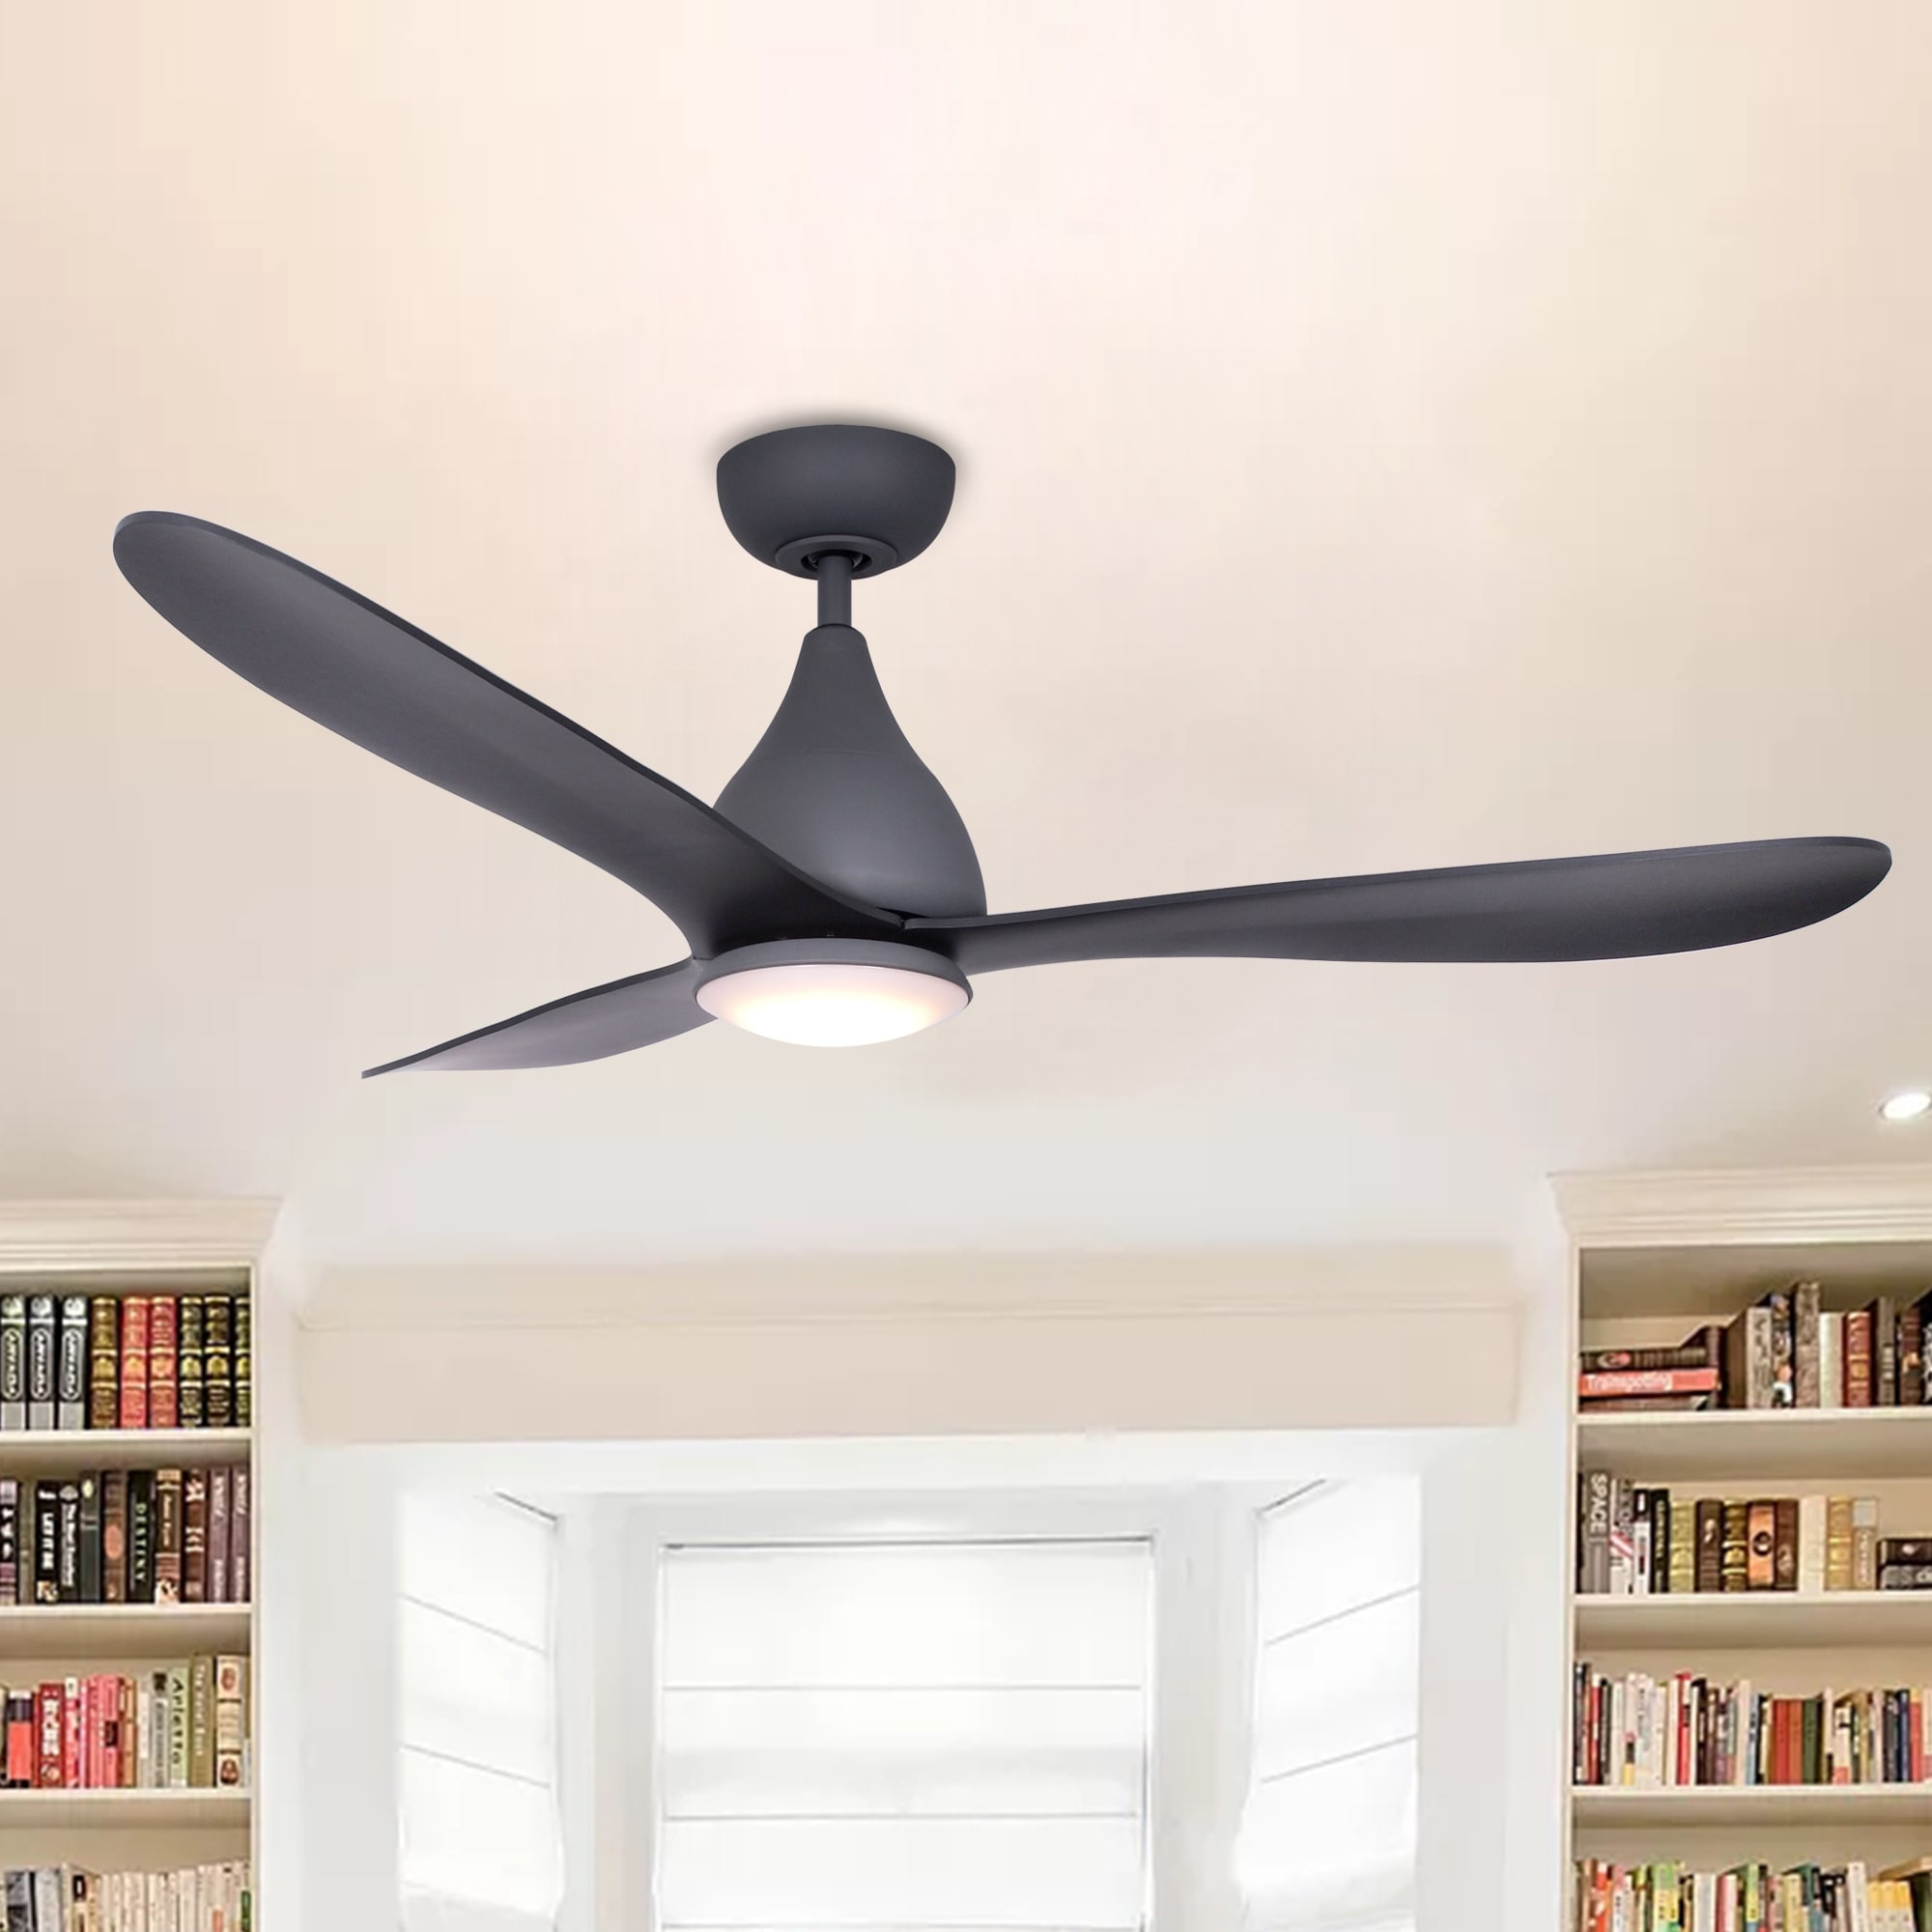 Shop charcoal wisp 48 inch ceiling fan with 3 blades on sale shop charcoal wisp 48 inch ceiling fan with 3 blades on sale free shipping today overstock 21358873 aloadofball Images